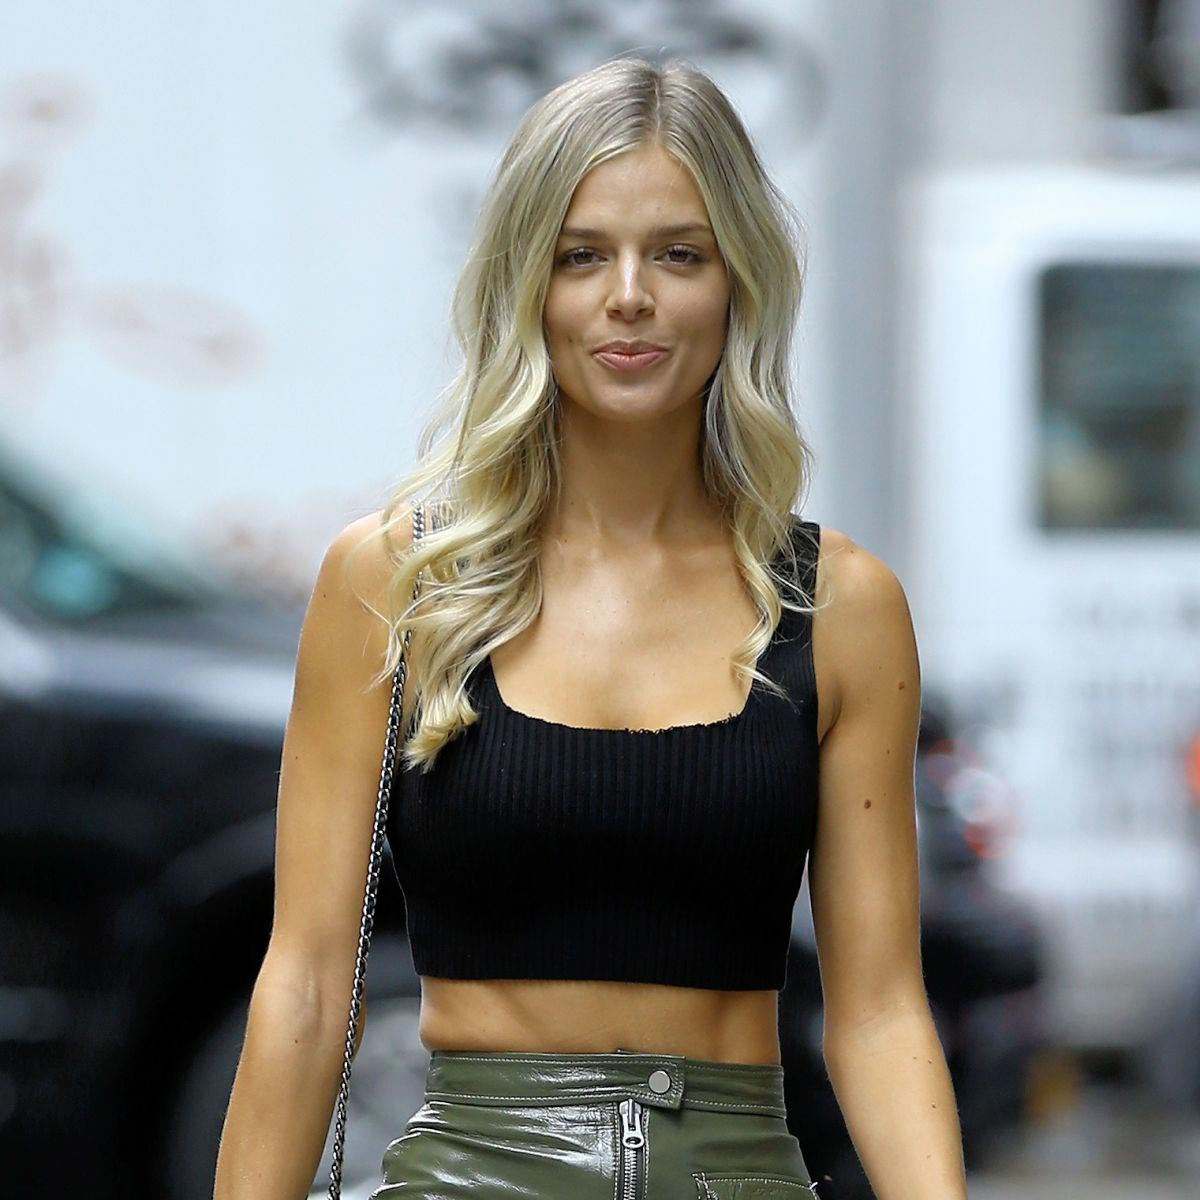 Tits 2019 Danielle Knudson naked photo 2017